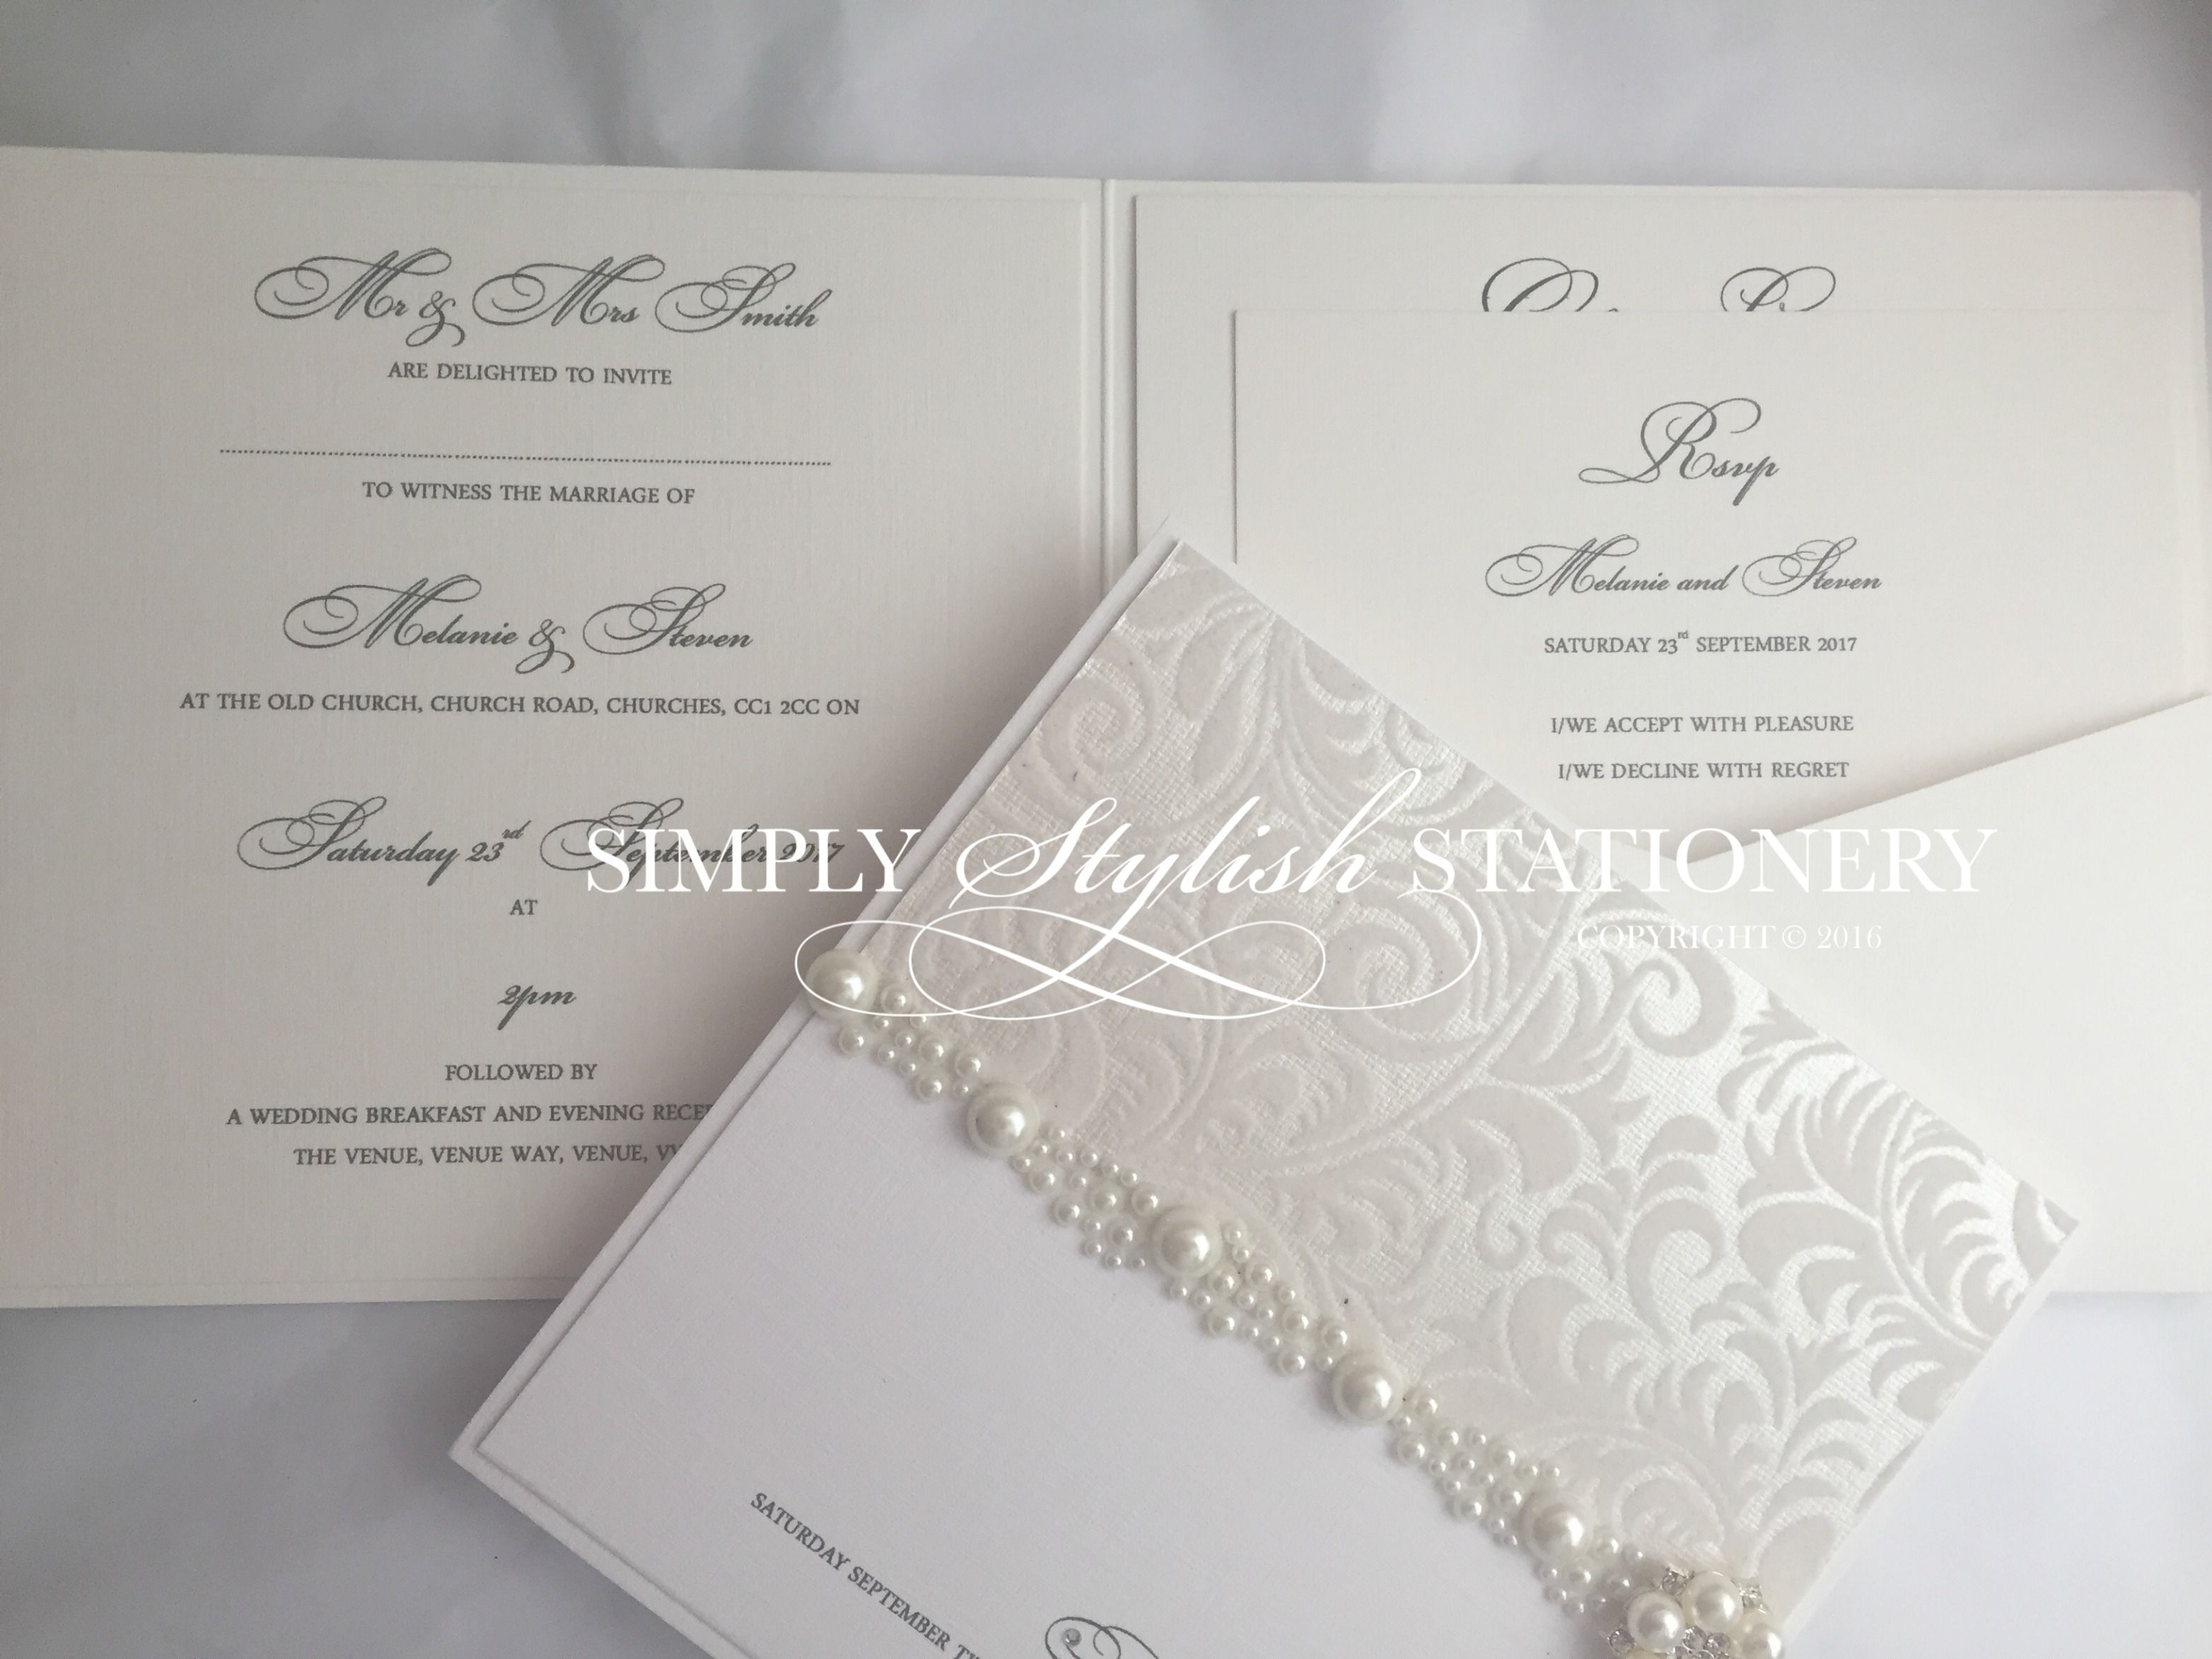 how to emboss wedding invitations diy%0A SAMPLE Luxury Pearl Wedding Invite  Handmade pocketfold invitation  embossed  invite with pearl embellishment